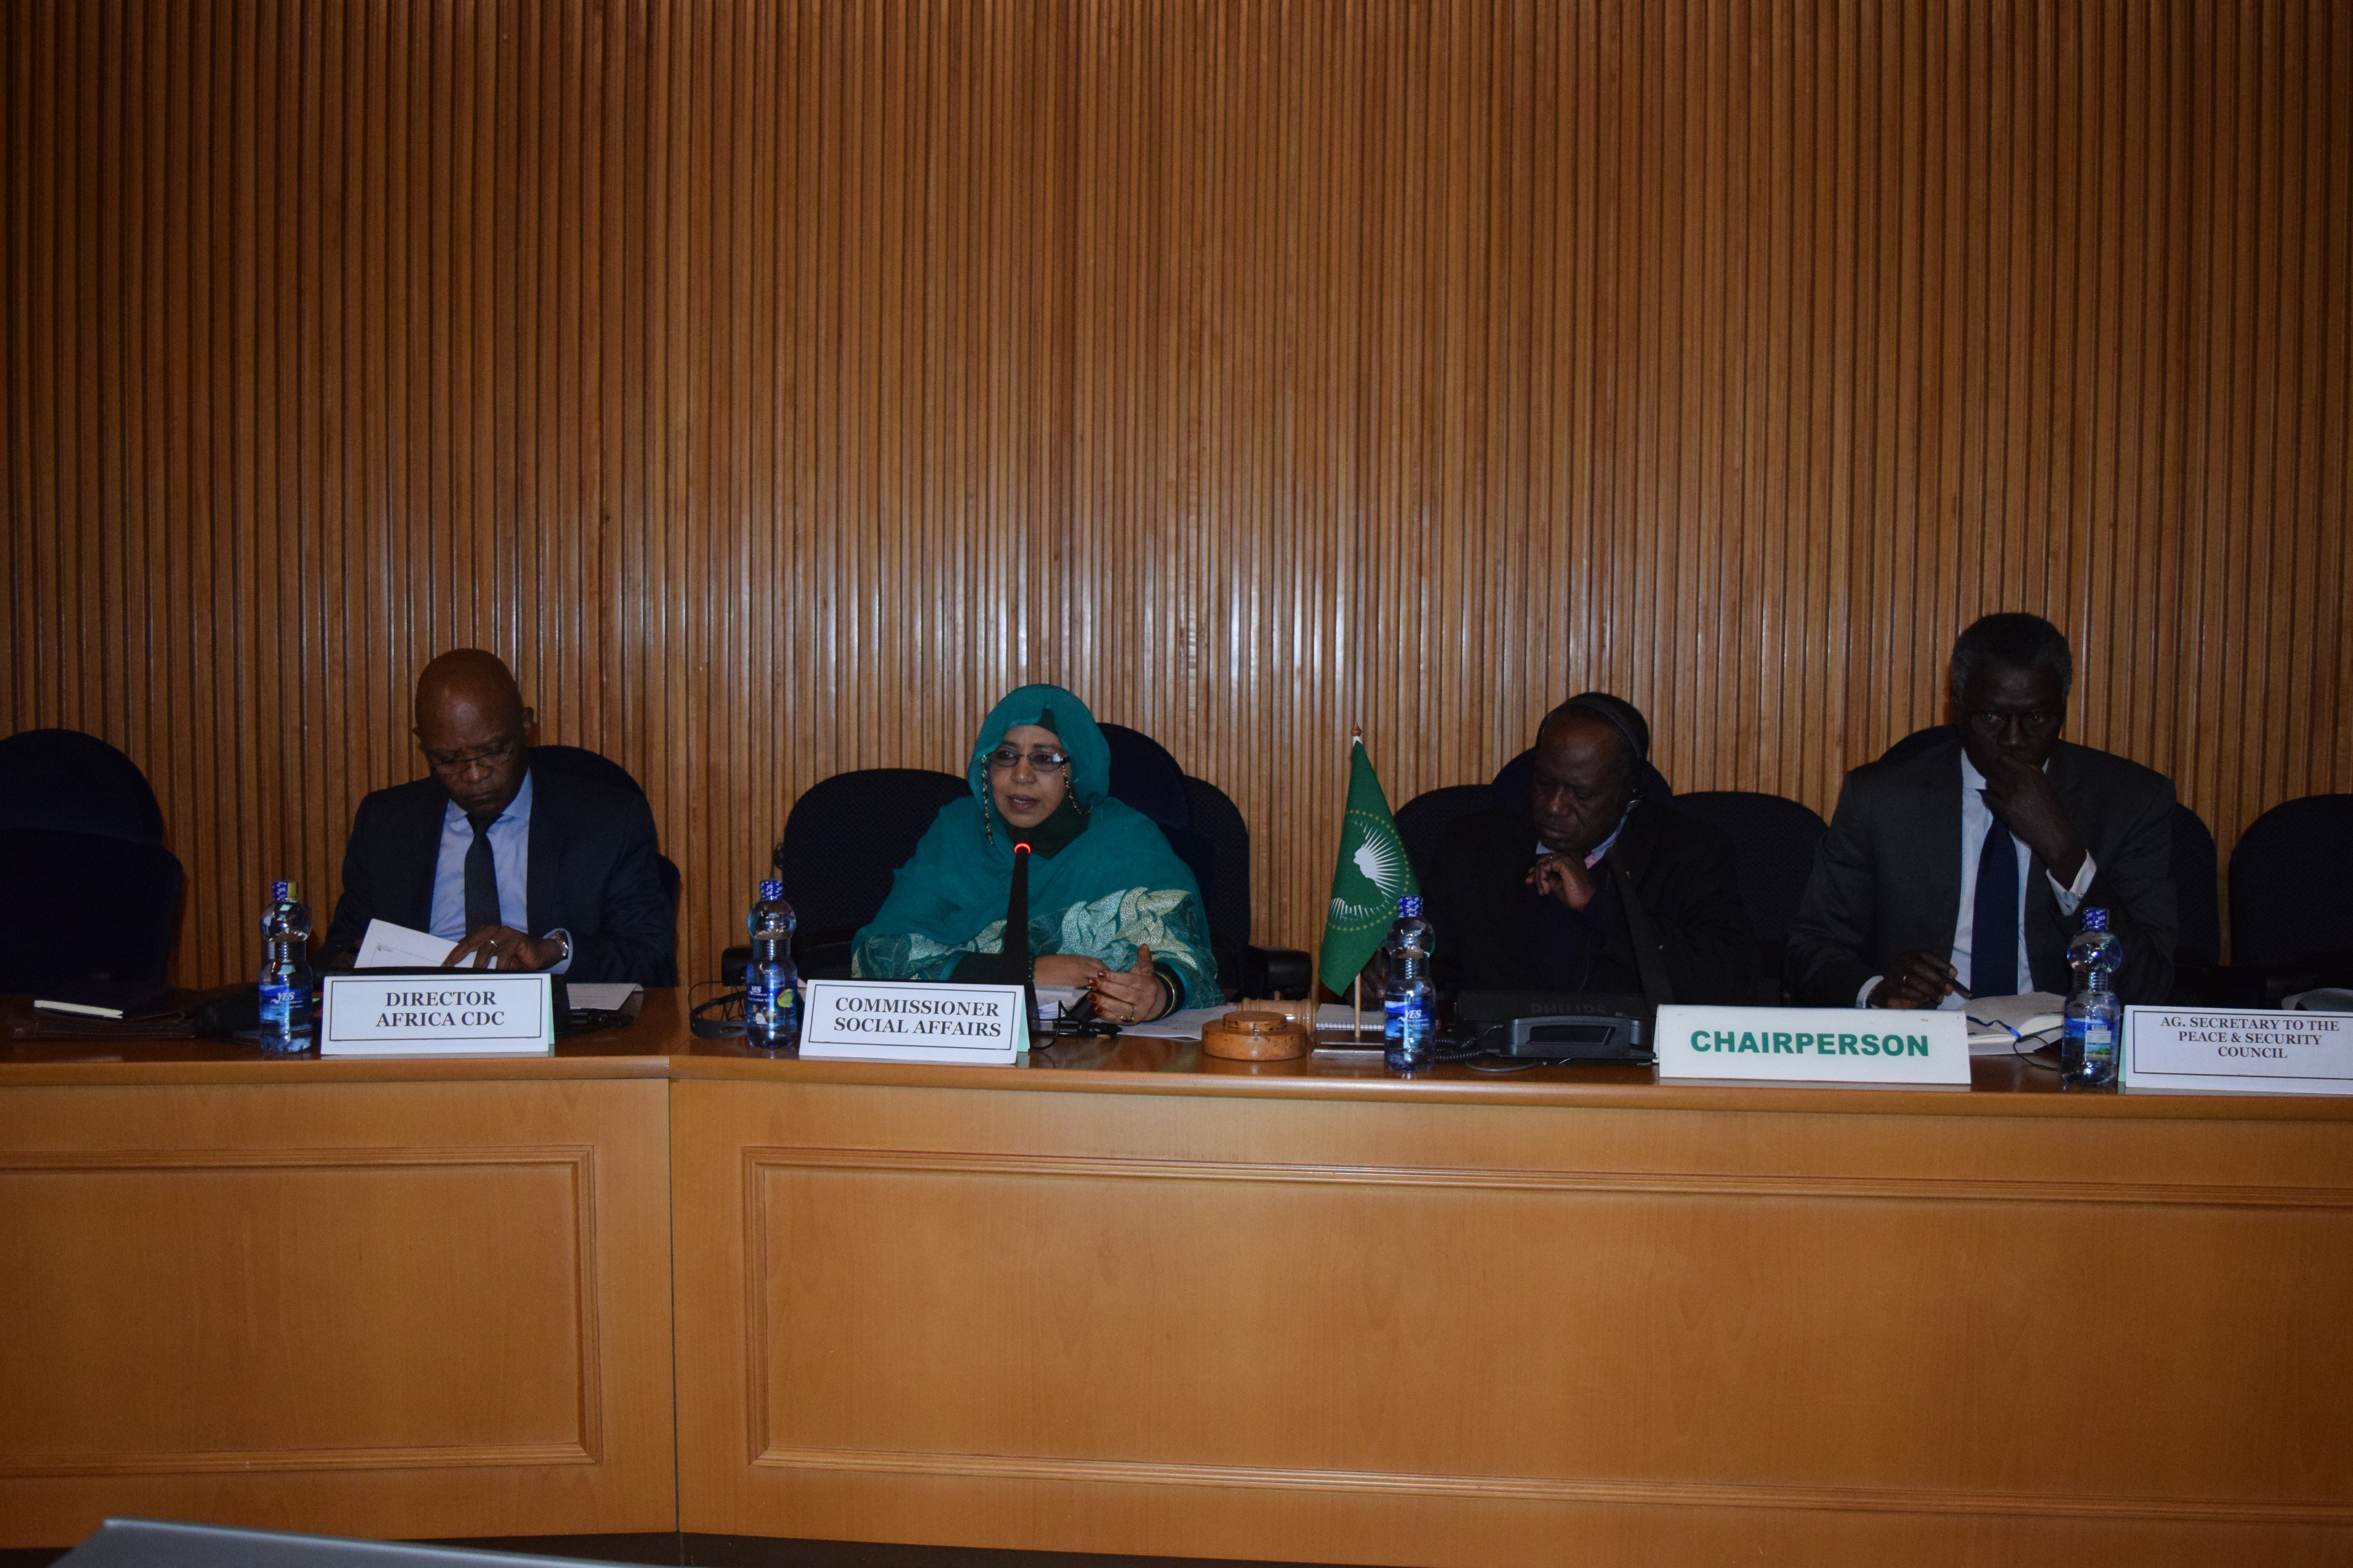 Communiqué of the 862nd meeting of the PSC, held on 23 July 2019, on the outbreak of Ebola in the Eastern part of the Democratic Republic of Congo (DRC)